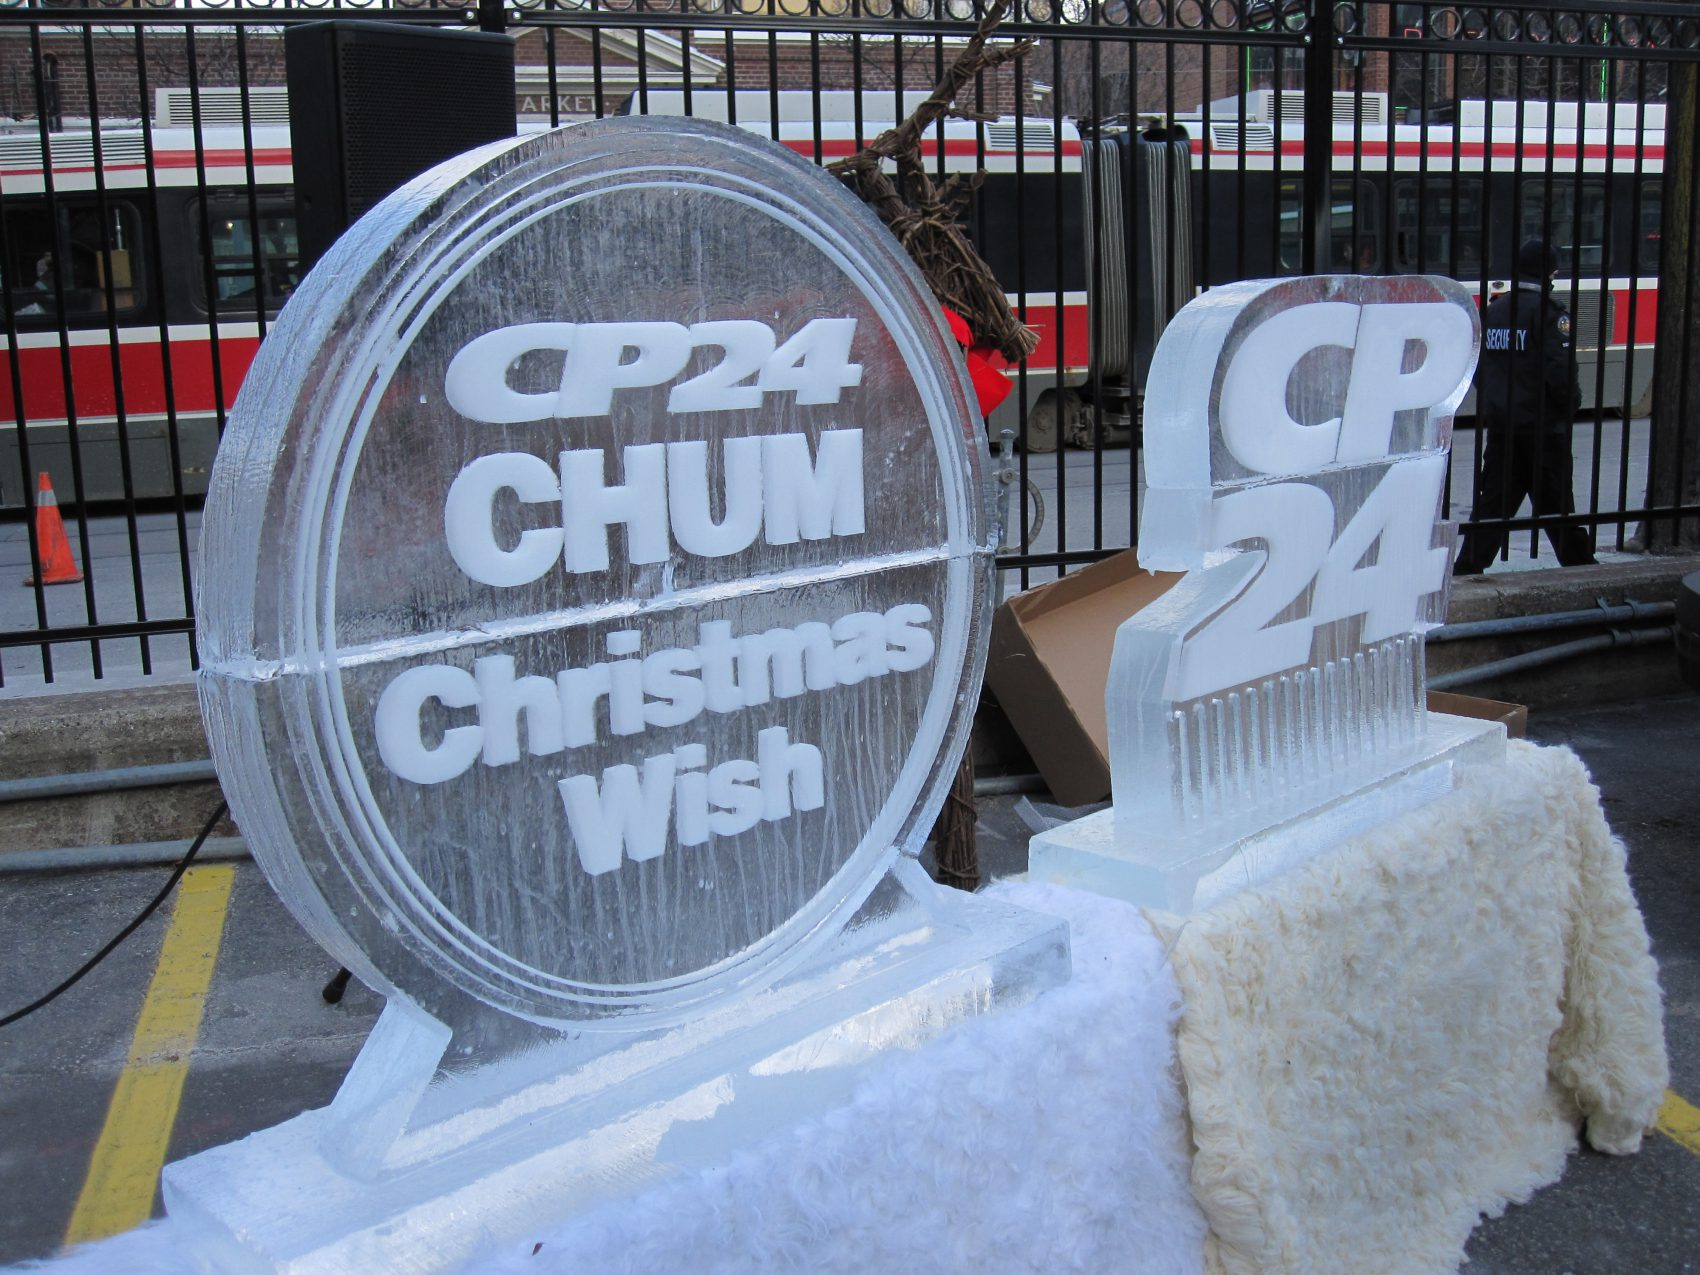 CP24 Chum Christmas wish logo